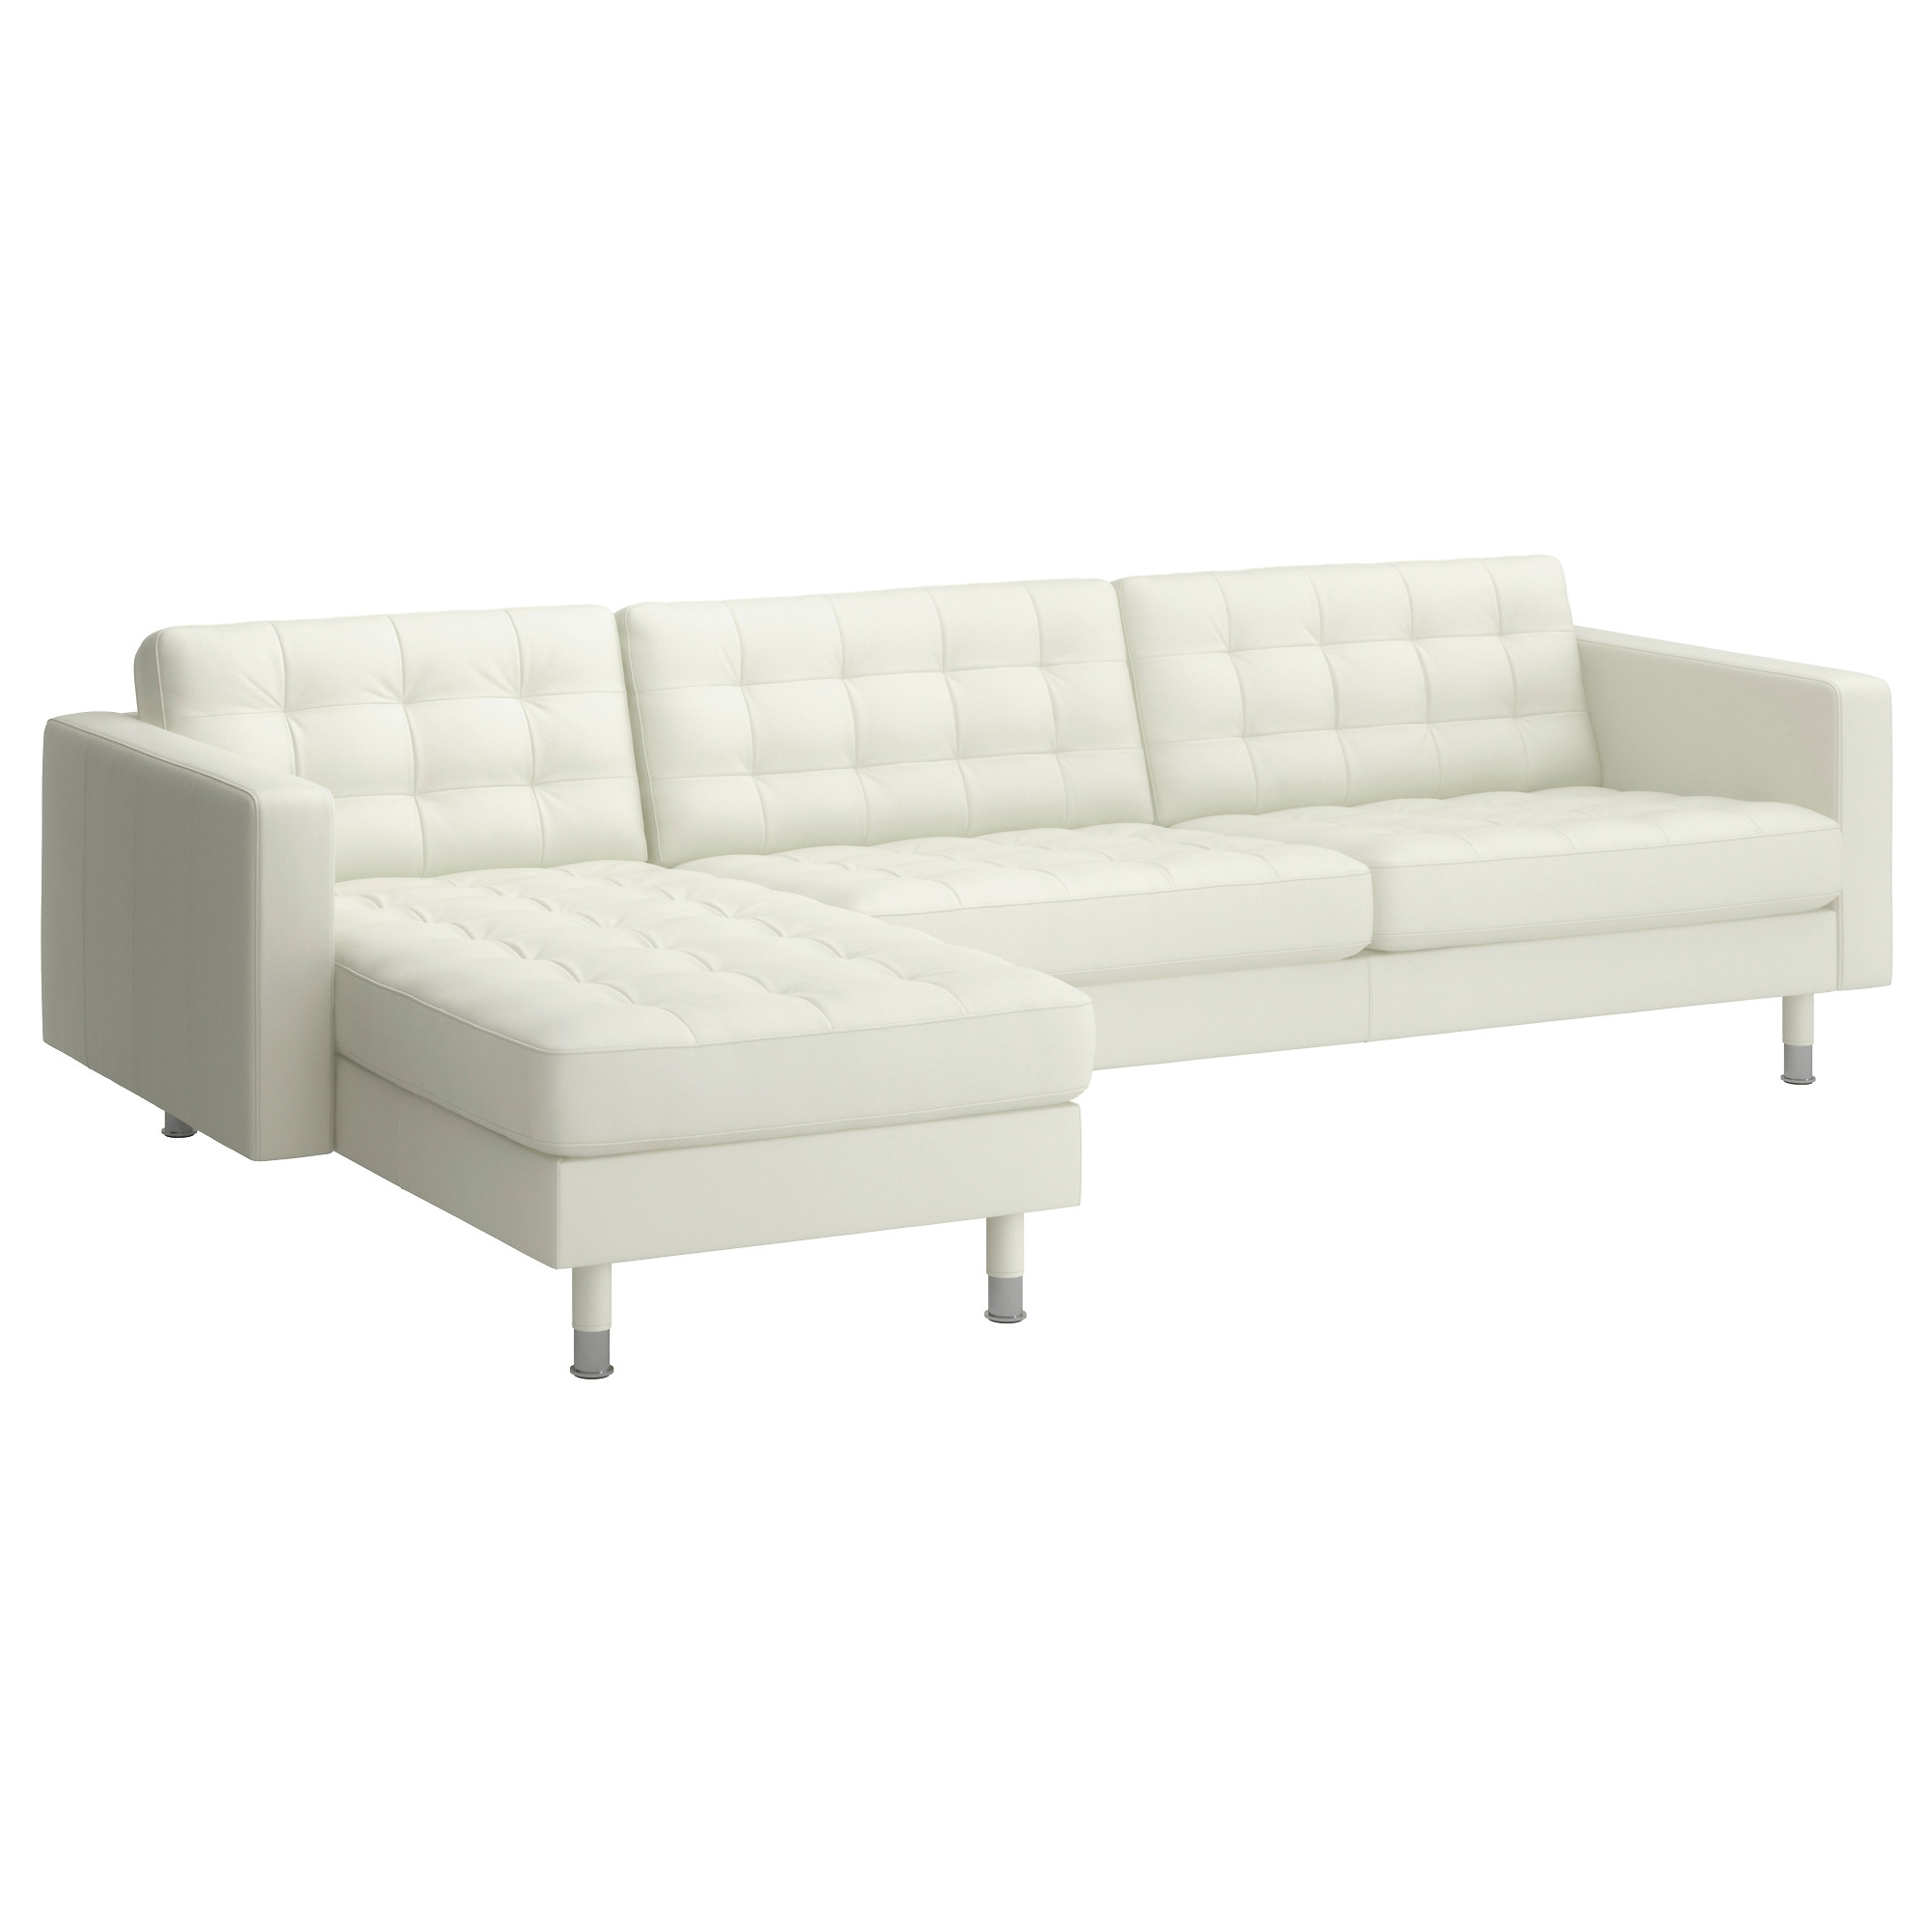 Fashionable Landskrona Sectional, 4 Seat – Grann/bomstad White, Metal – Ikea With White Leather Sectionals With Chaise (View 6 of 15)